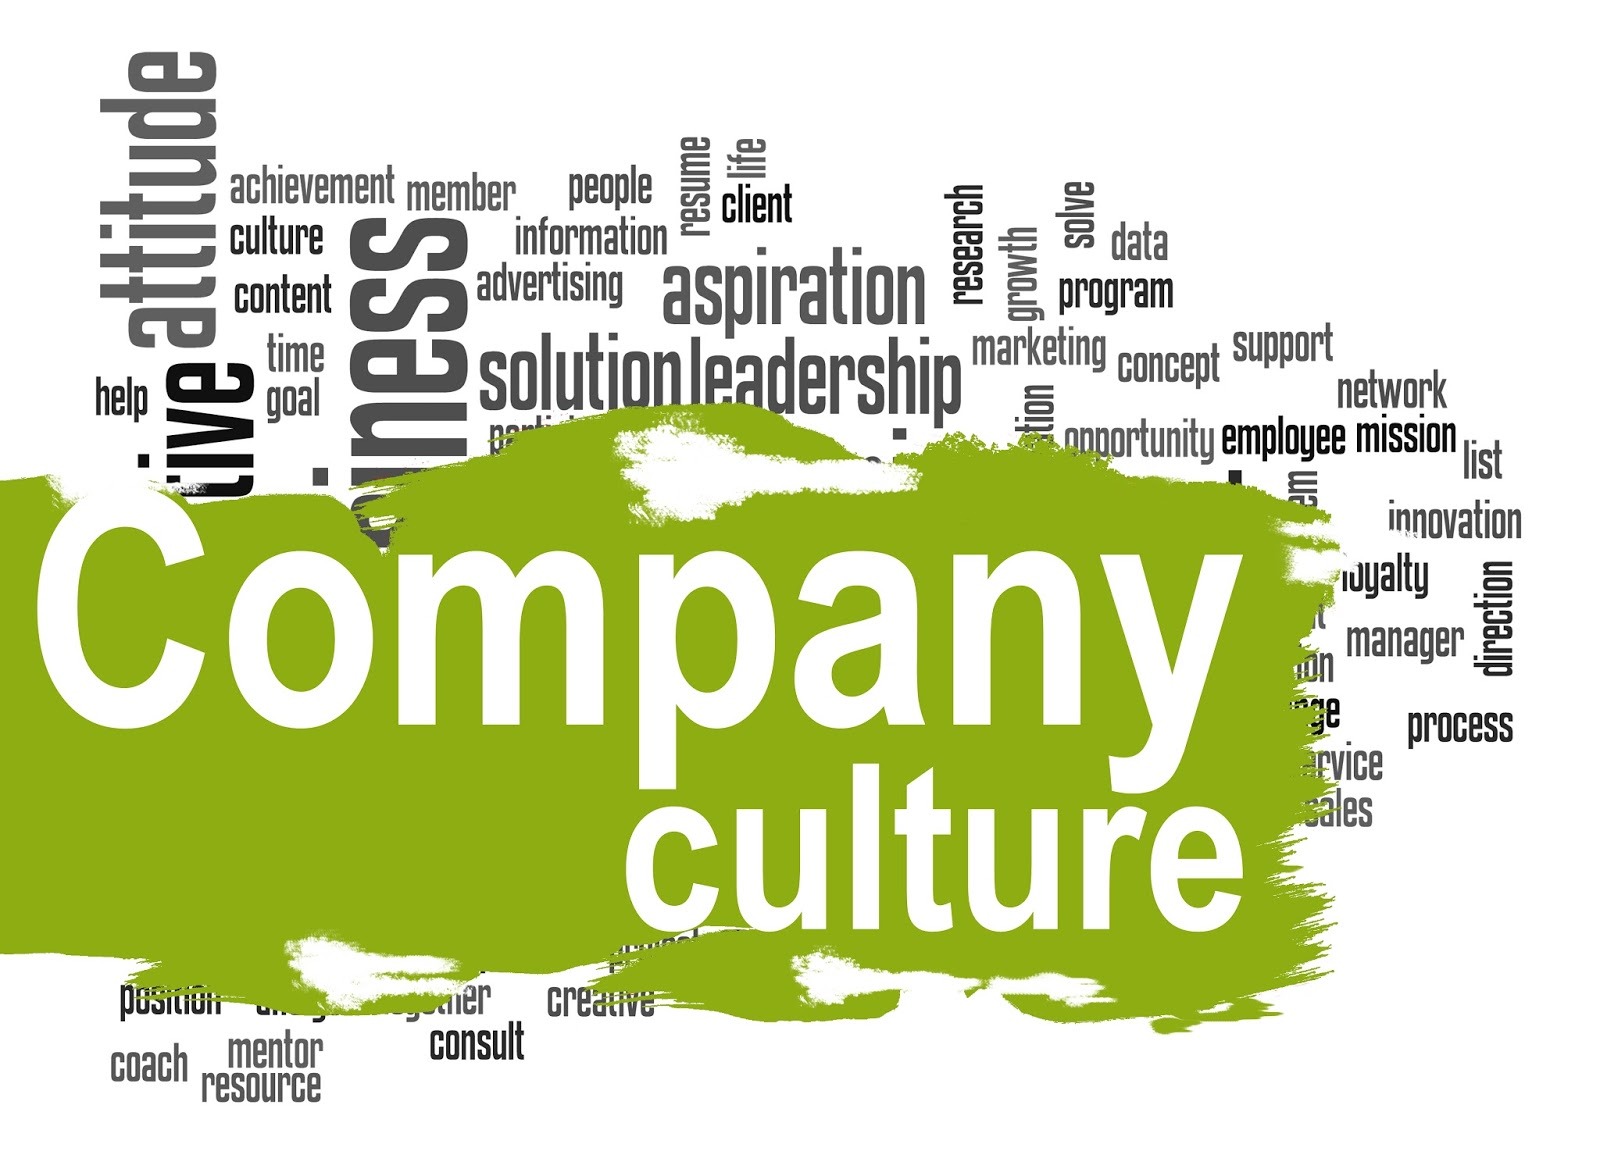 the inherent value of creating an innovative company culture beliefs values actions and policies towards a commitment to continually create new value in their organization creating such a culture is